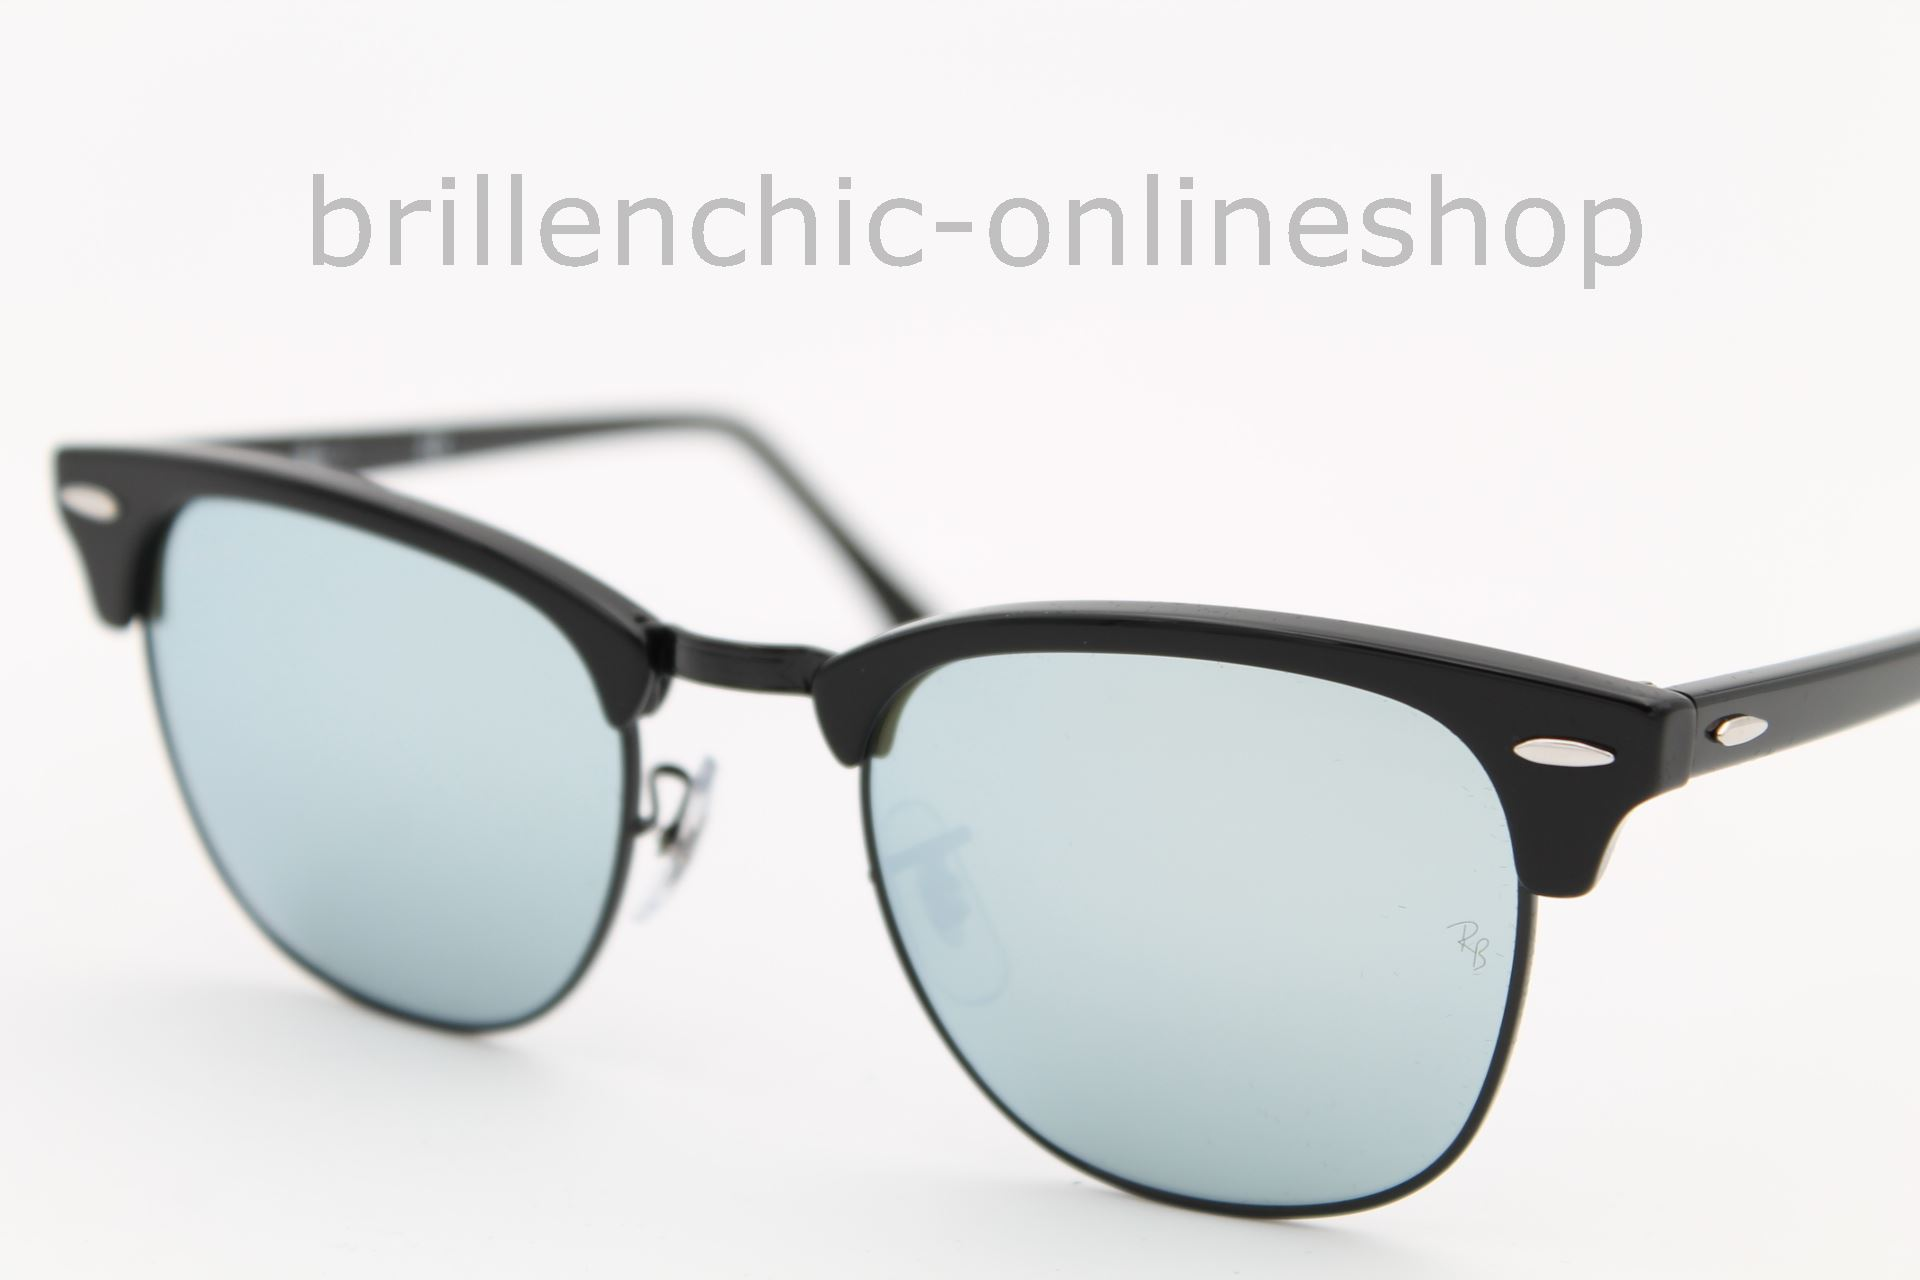 266a97a85ed91f Brillenchic-onlineshop in Berlin - Ray Ban CLUBMASTER RB 3016 1229 ...